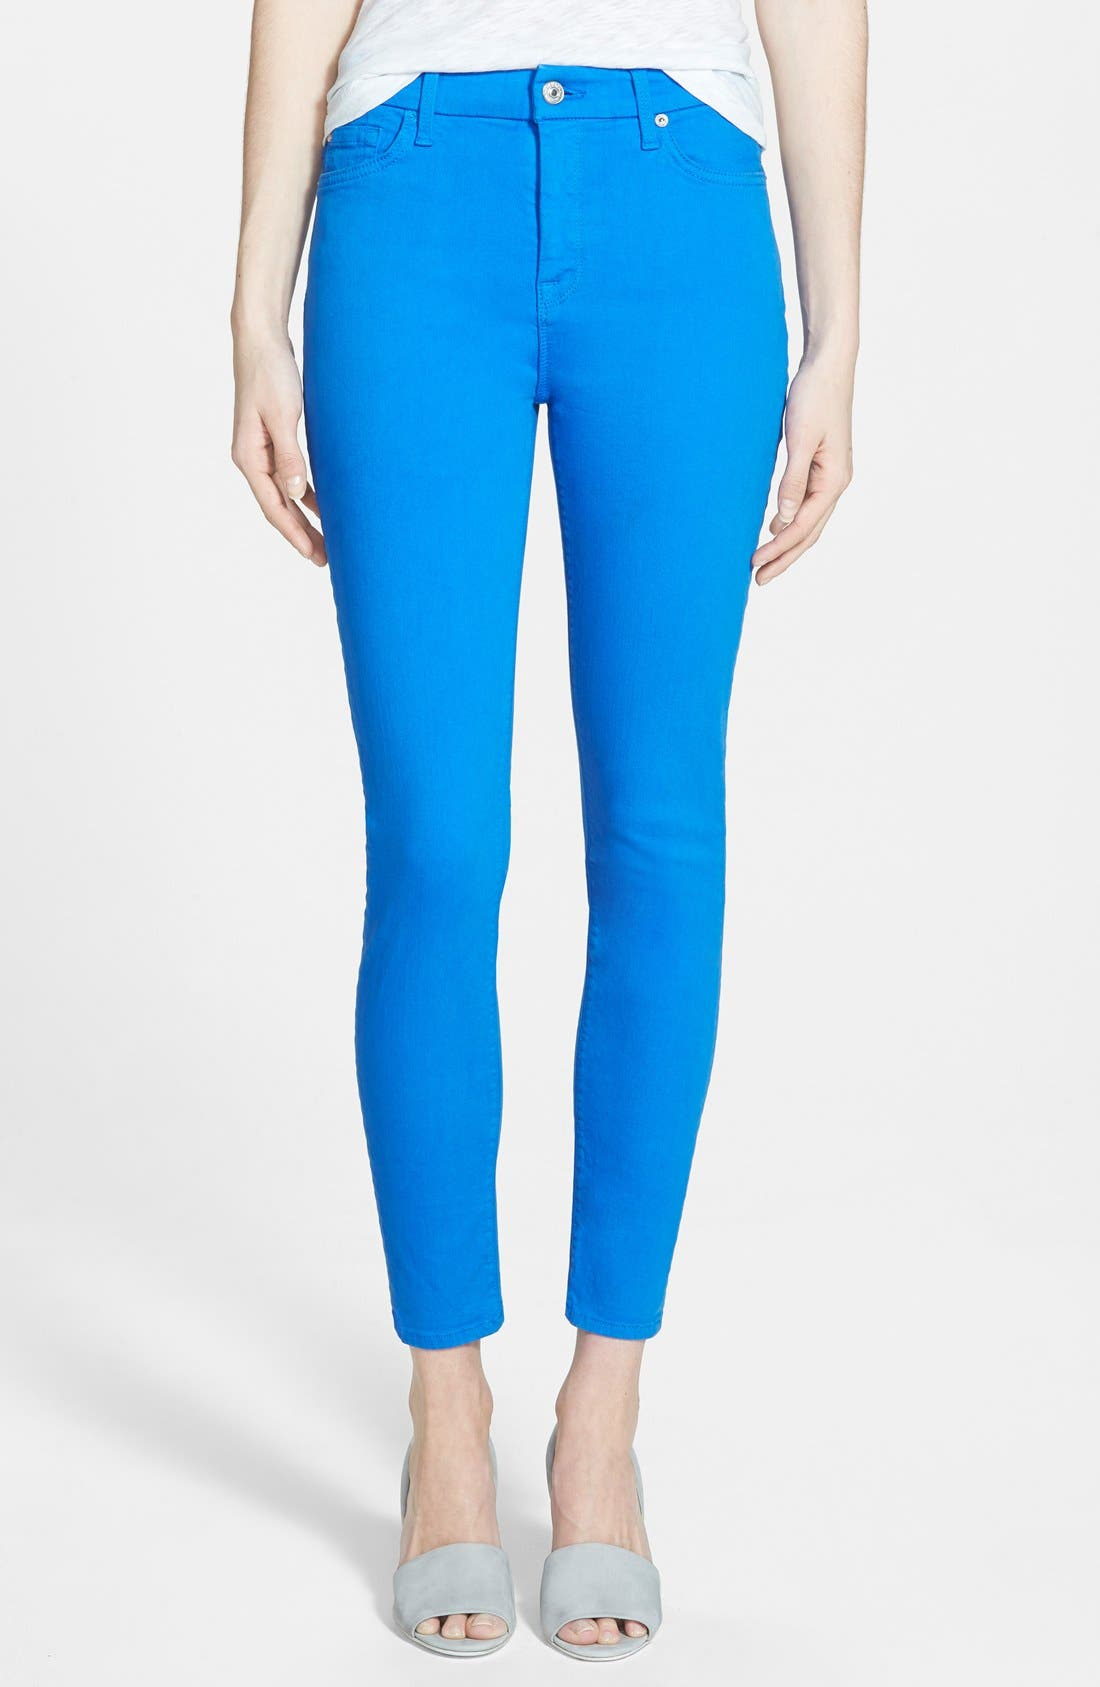 Alternate Image 1 Selected - 7 For All Mankind® High Rise Ankle Skinny Jeans (Ultramarine)